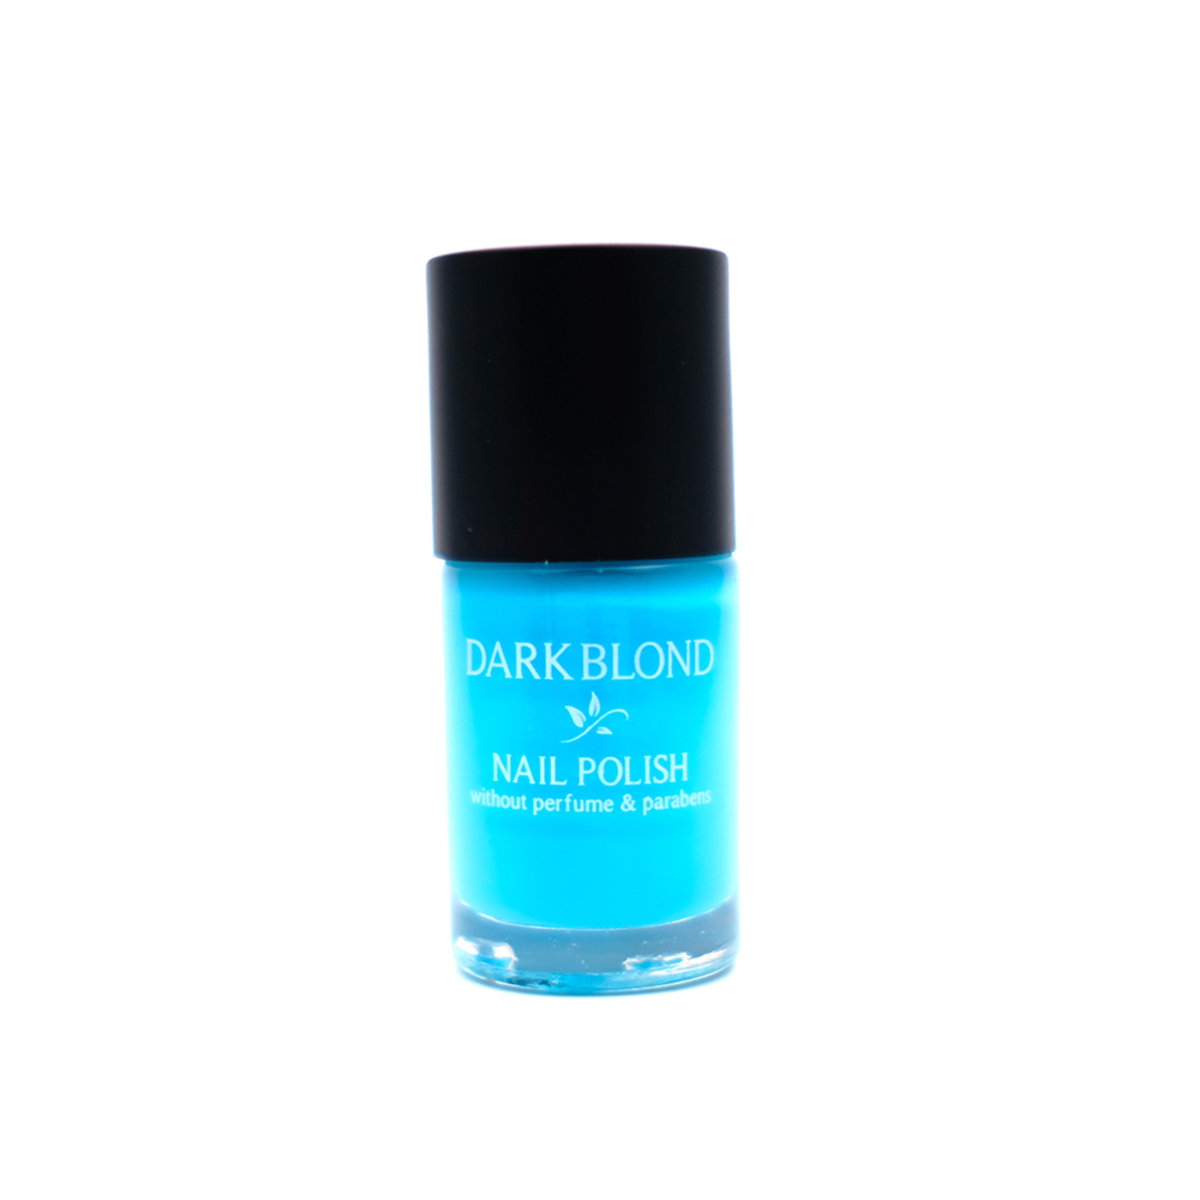 NAIL POLISH - 283 MILKY BLUE